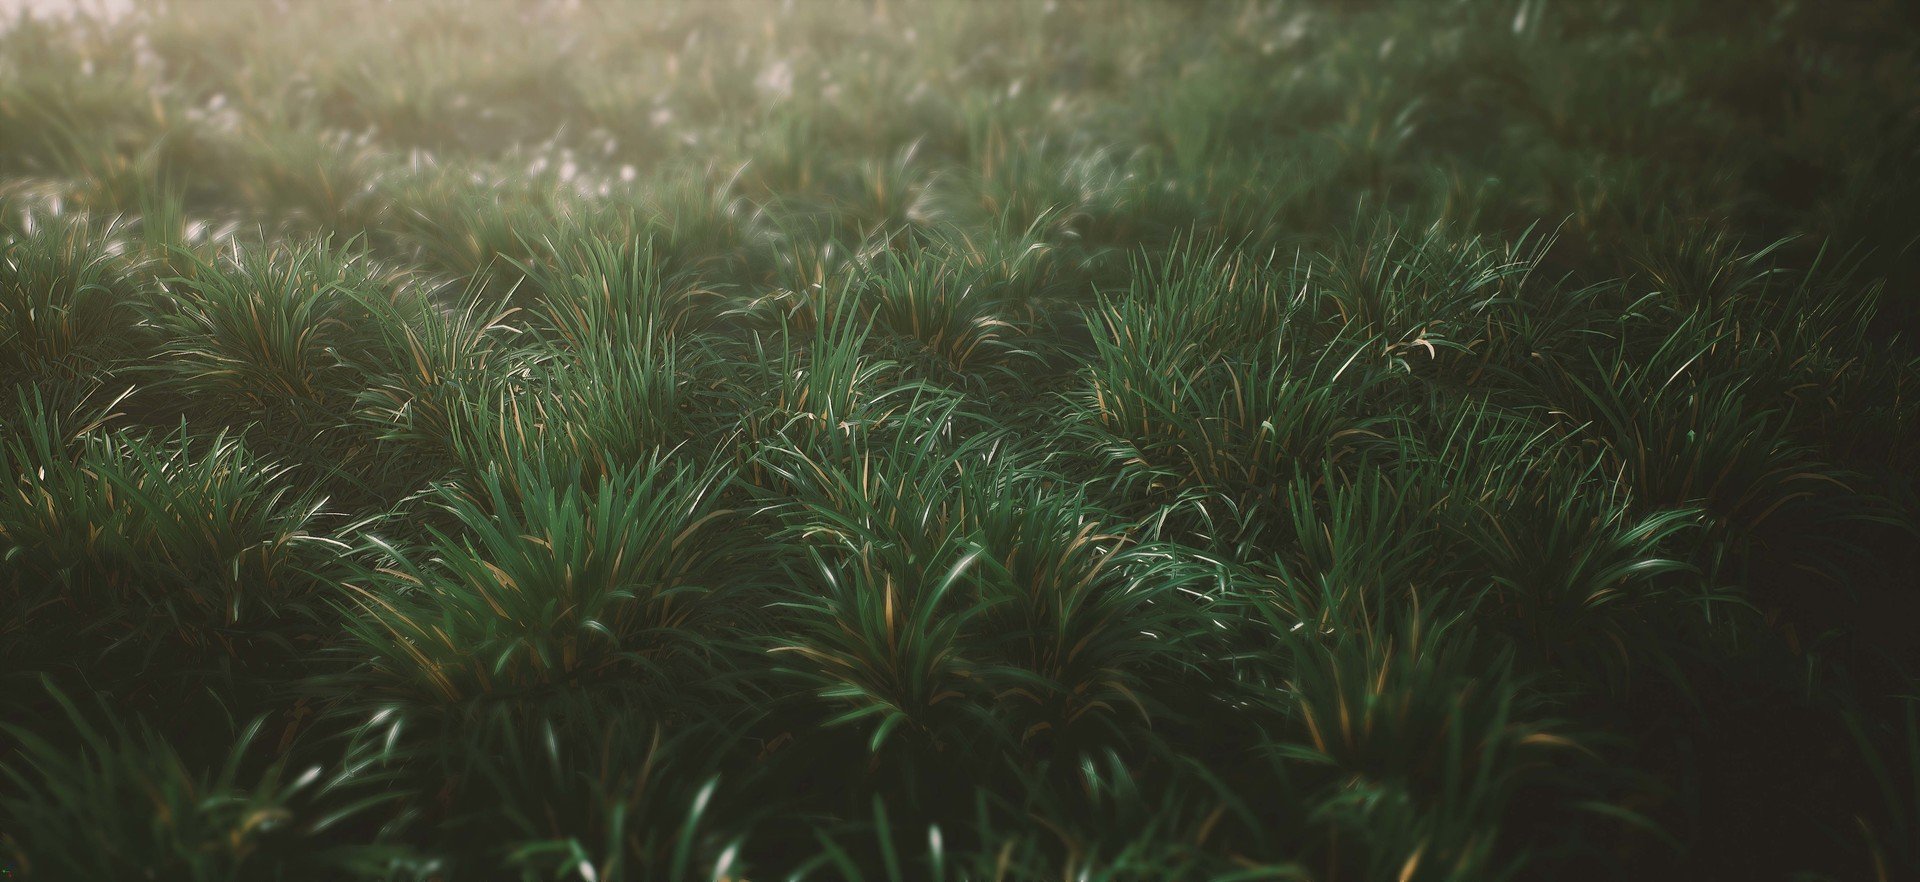 Sebastian schulz ue4 grass interaction 05